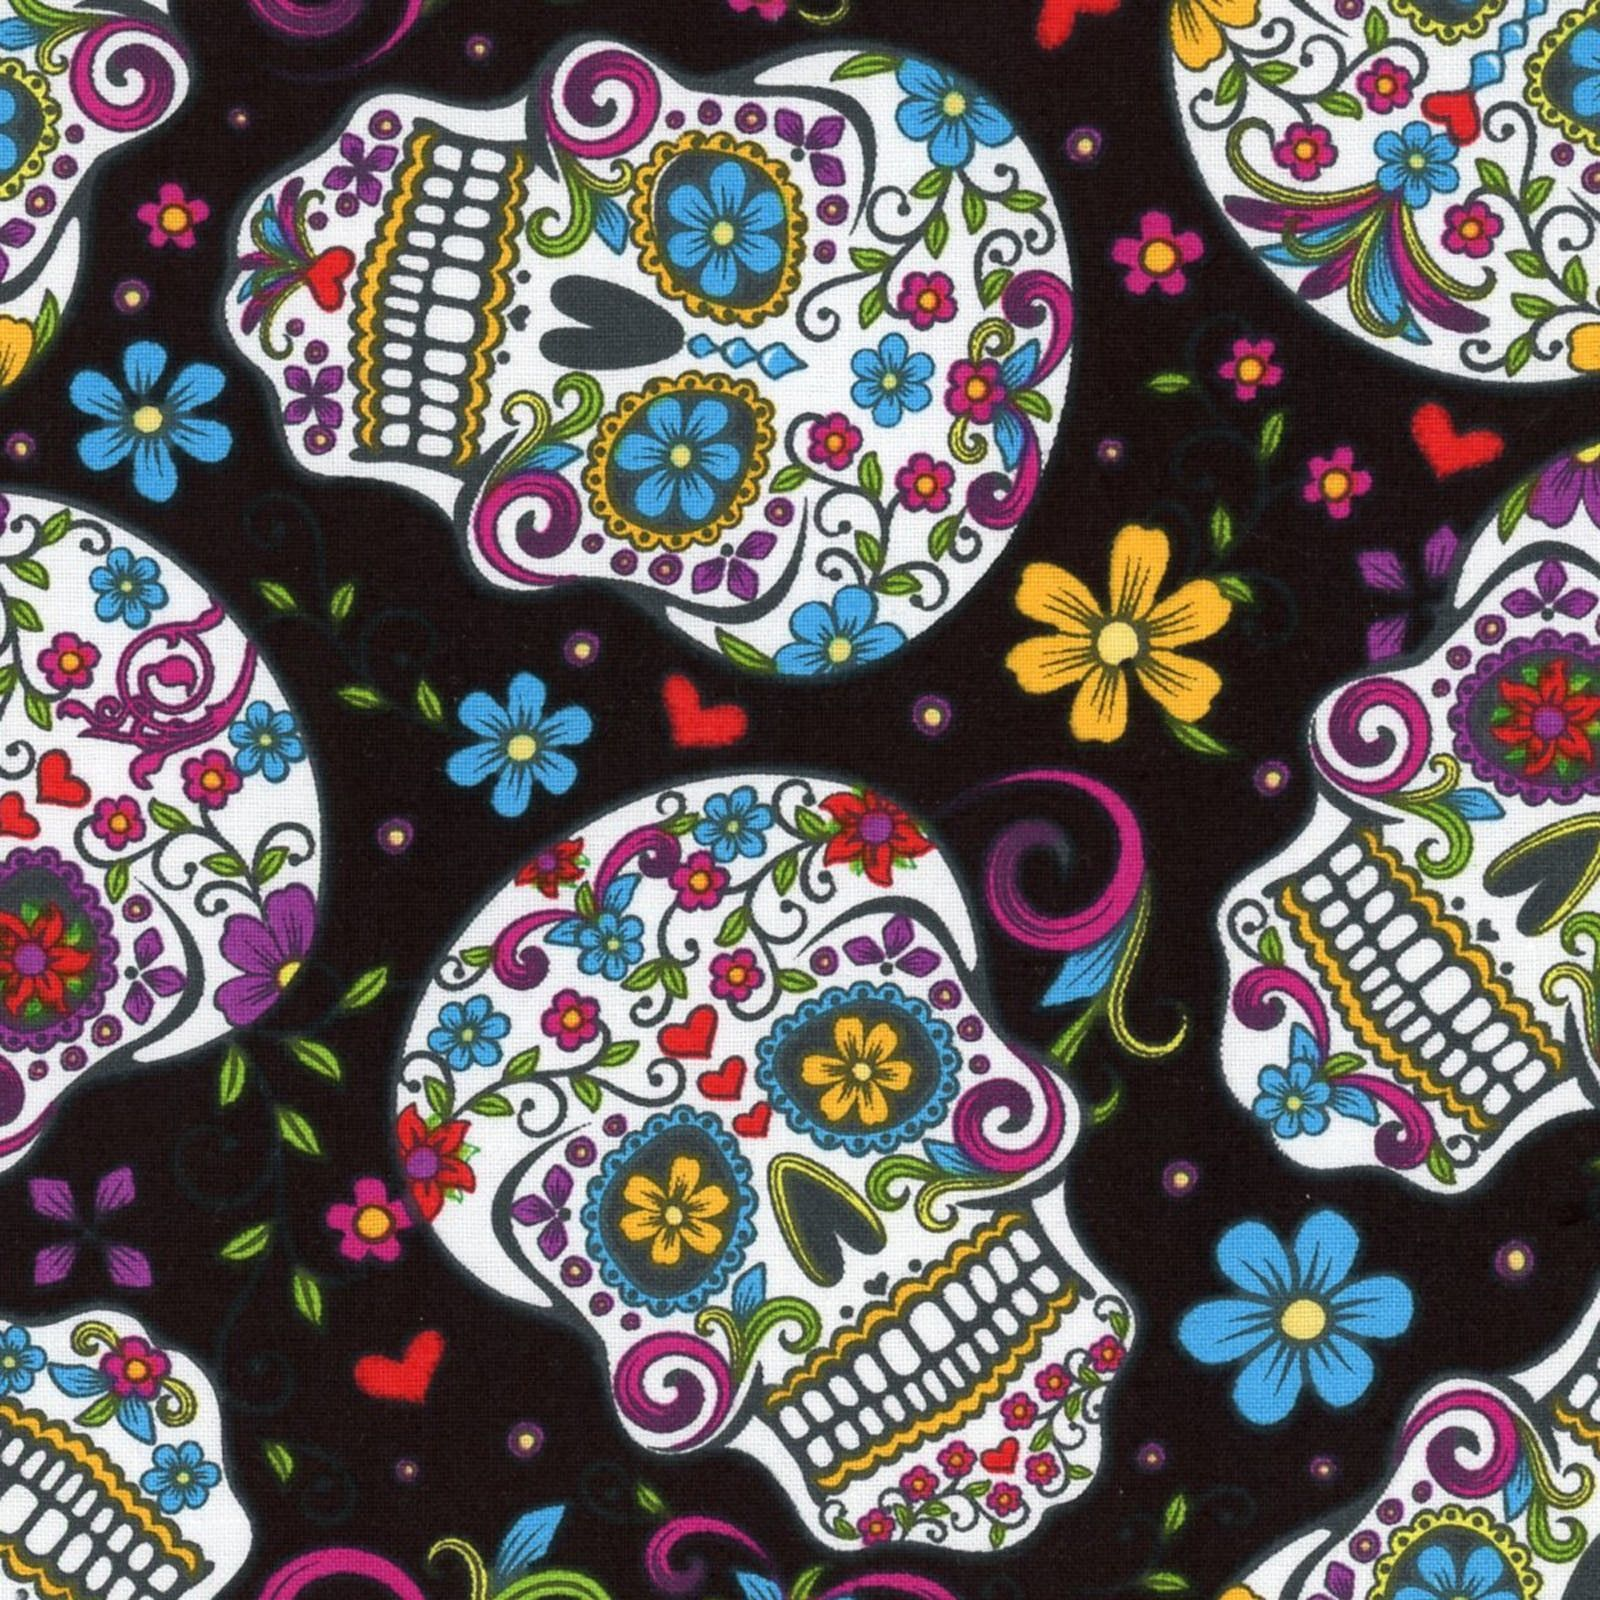 Fabric Day of the Dead Skulls & Zombies on Black Cotton By The 1 4